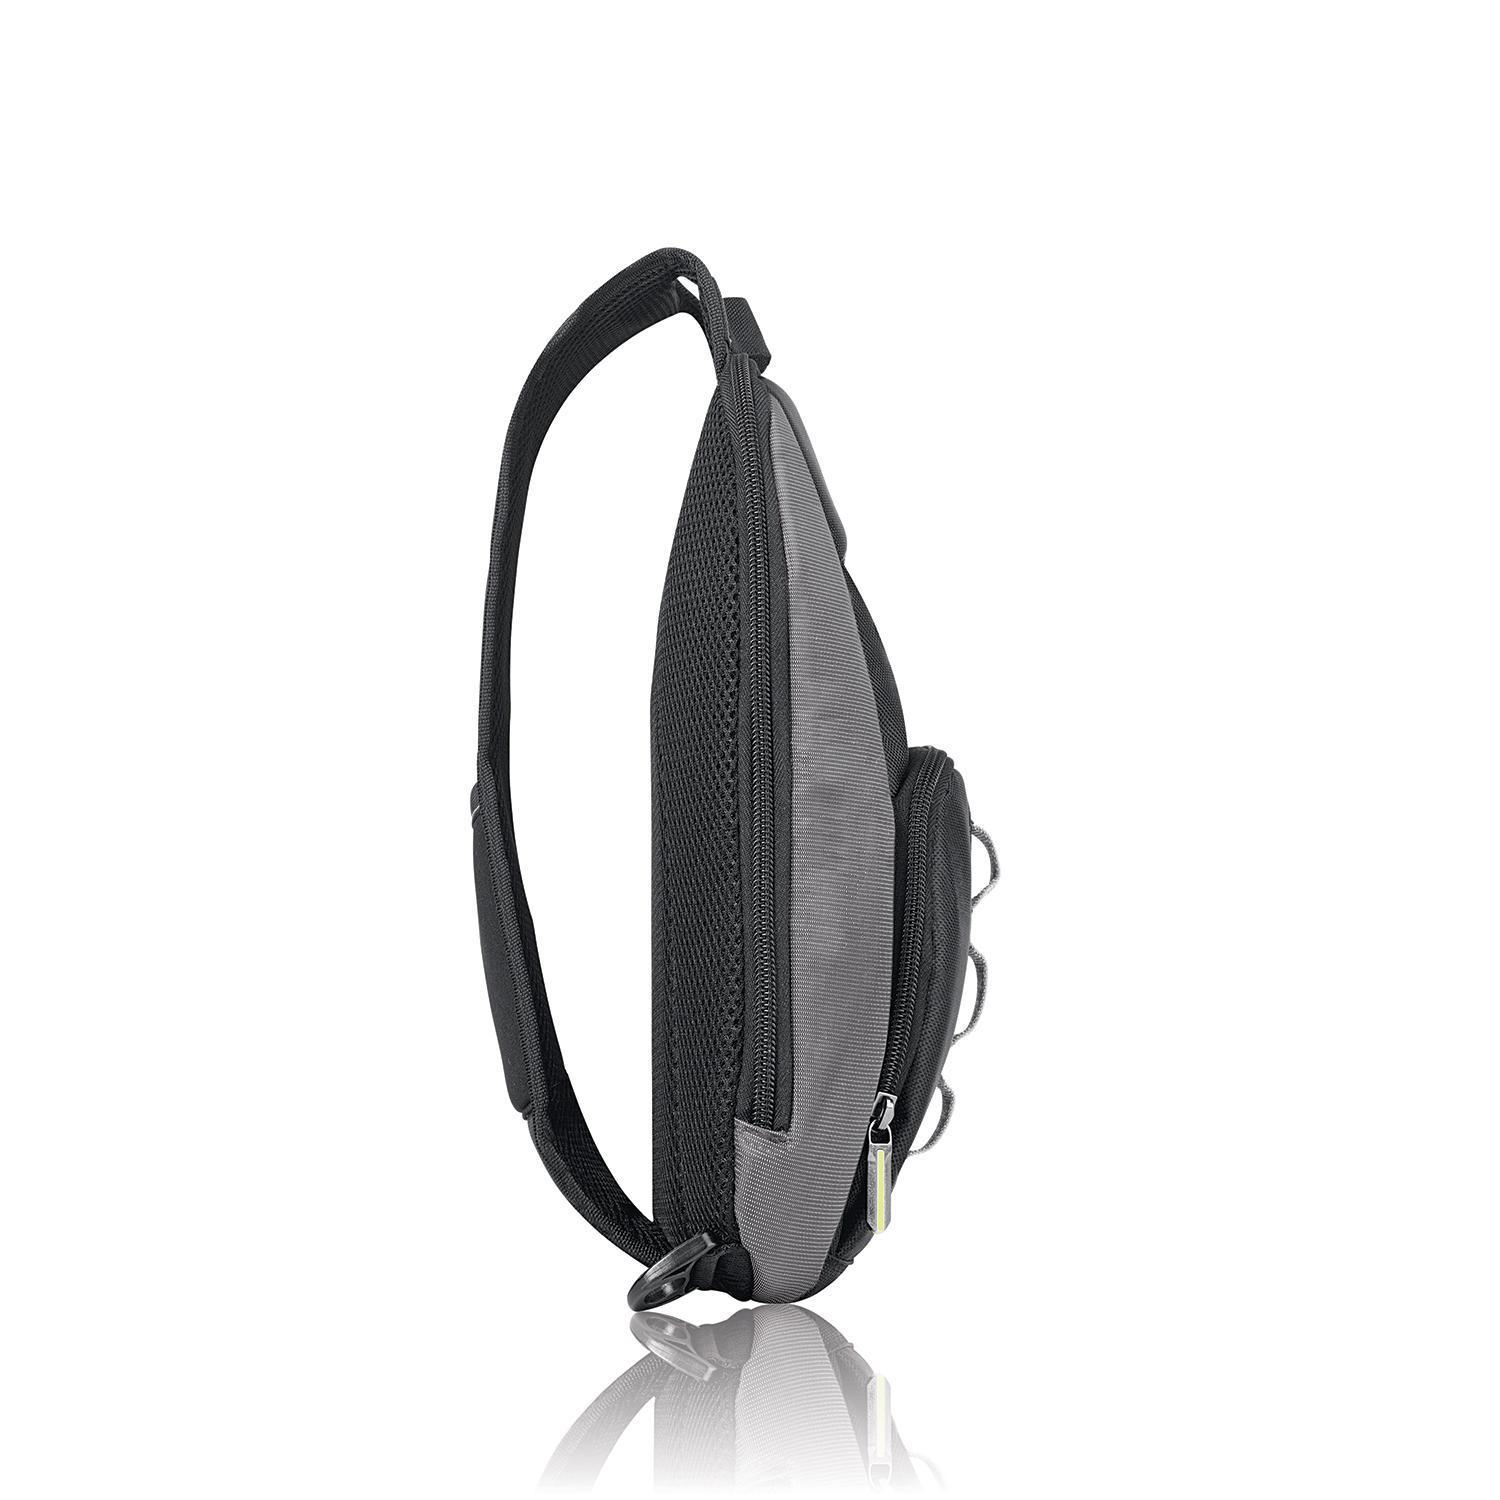 Solo Active Universal Tablet Sling 2 credit Courtesy of Solo